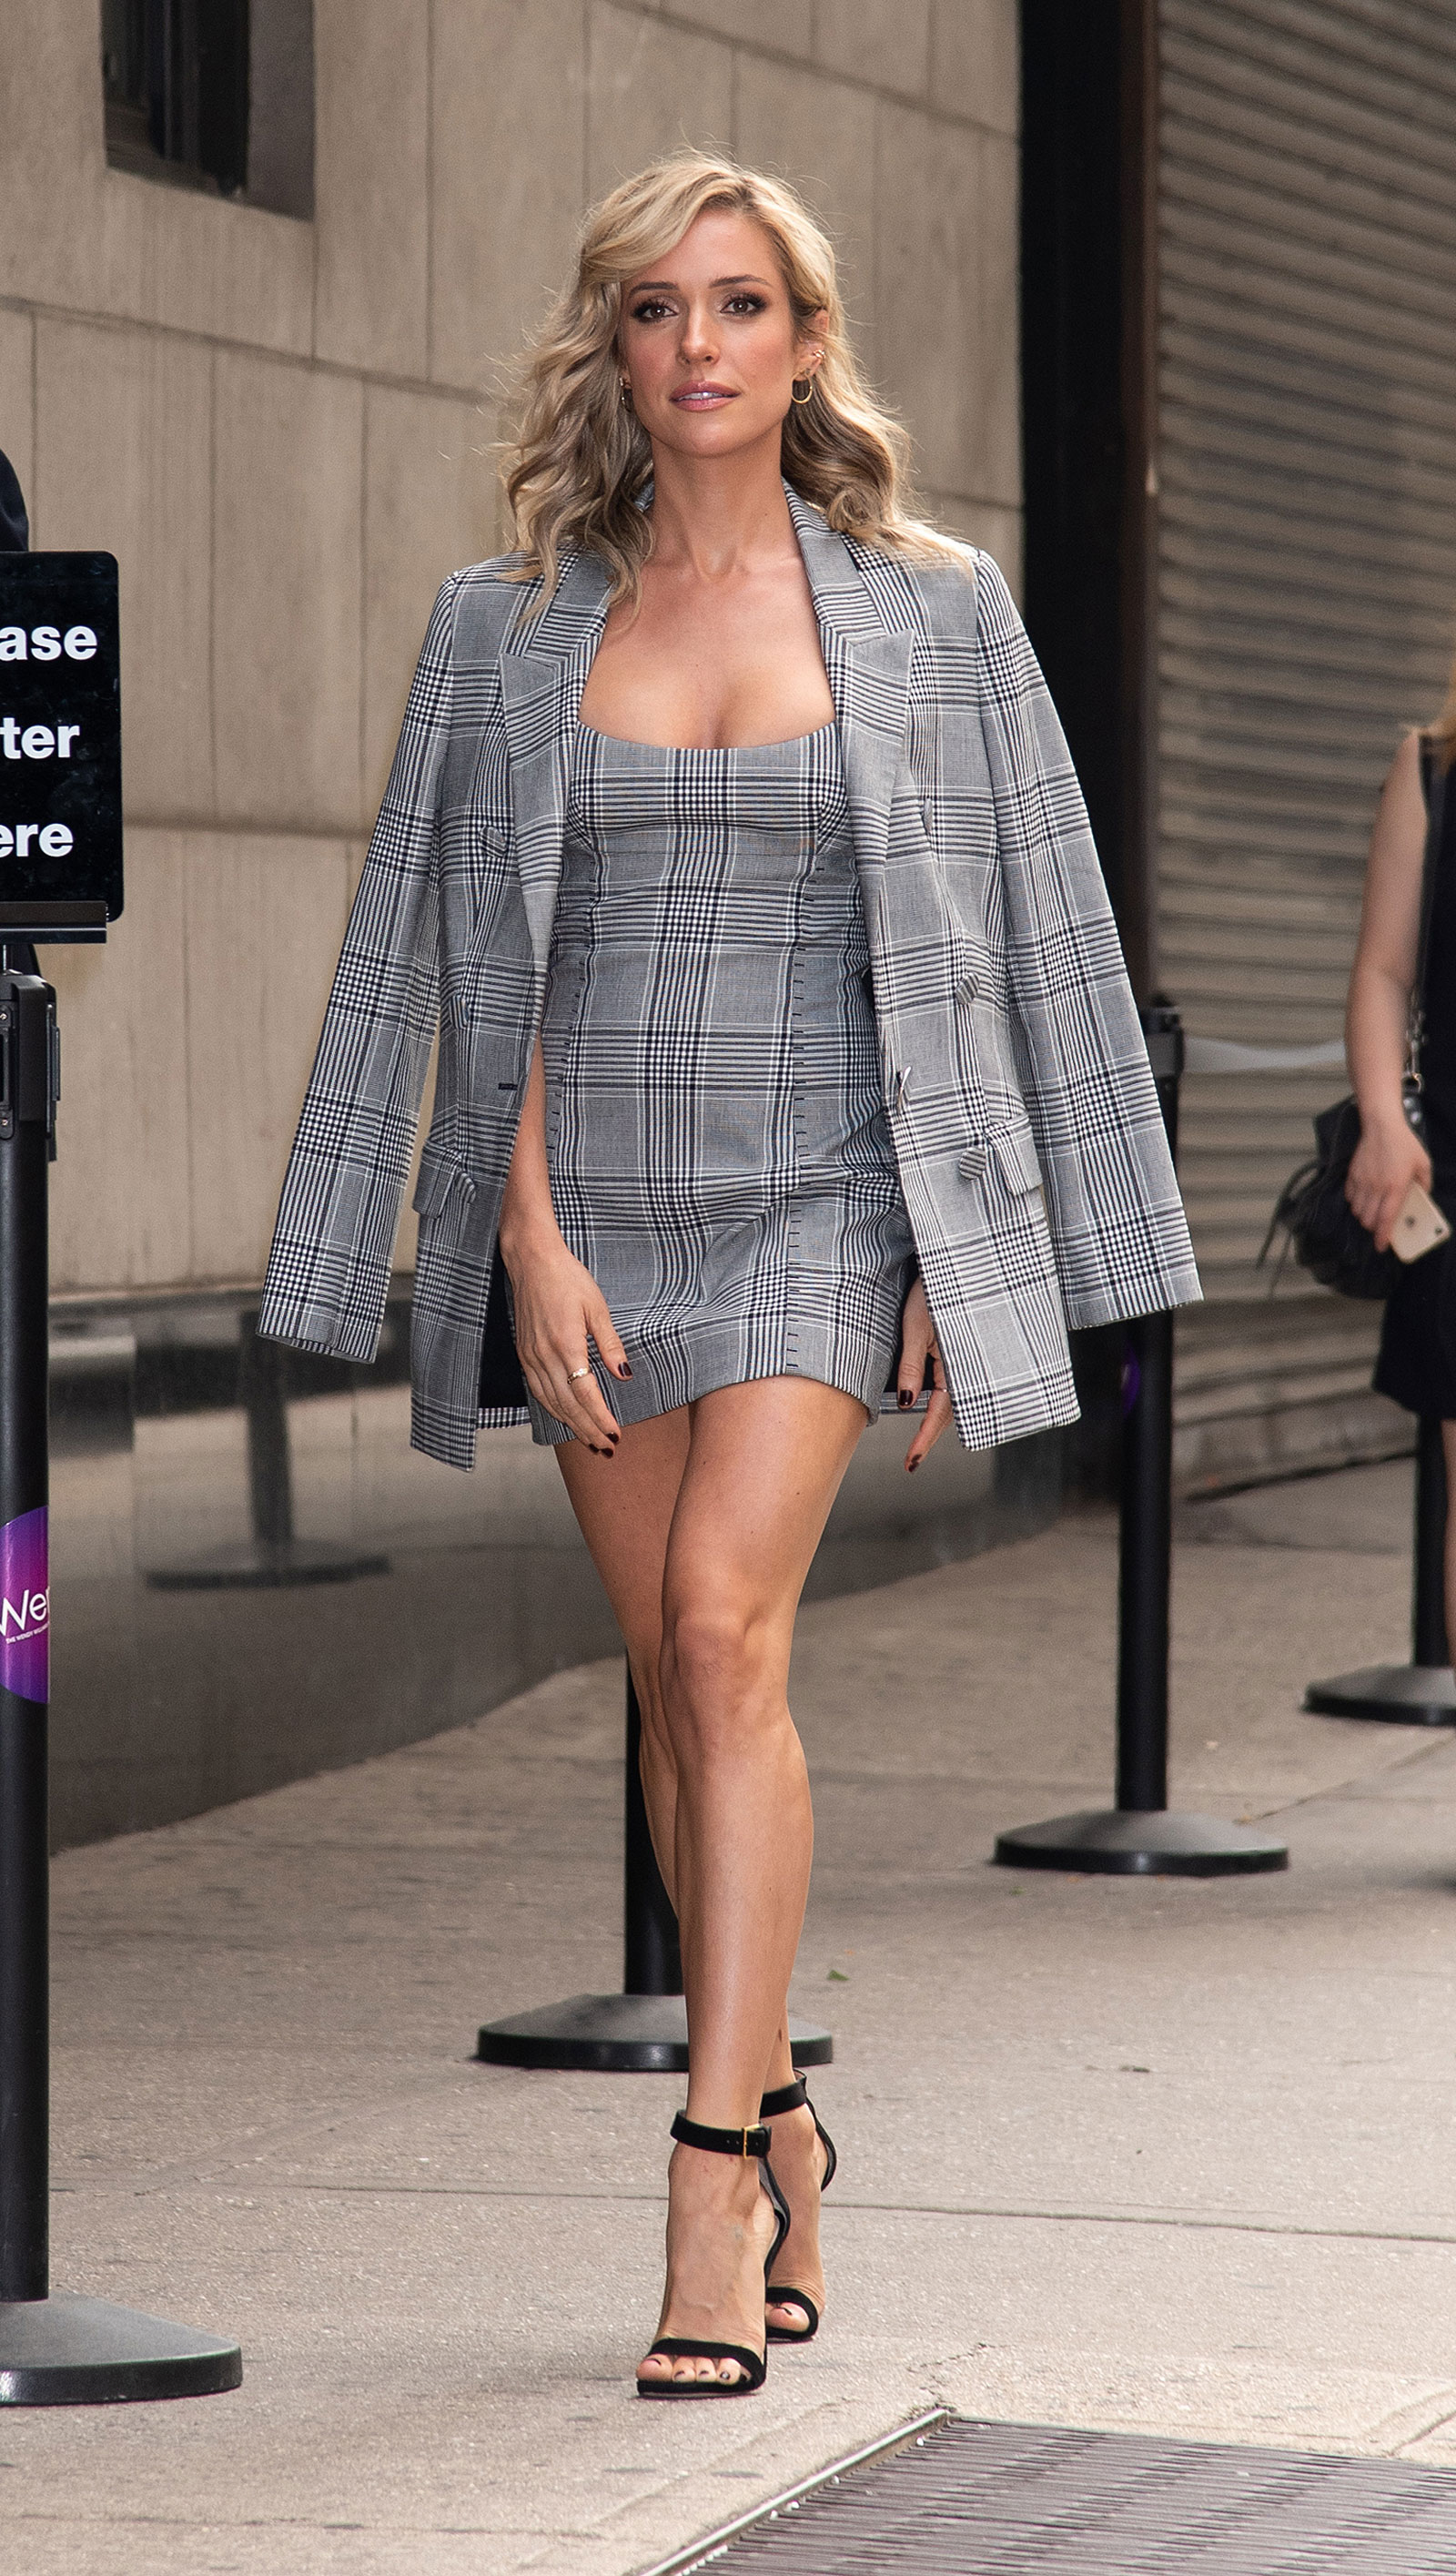 Kristin Cavallari Plaid Mini Dress and Blazer